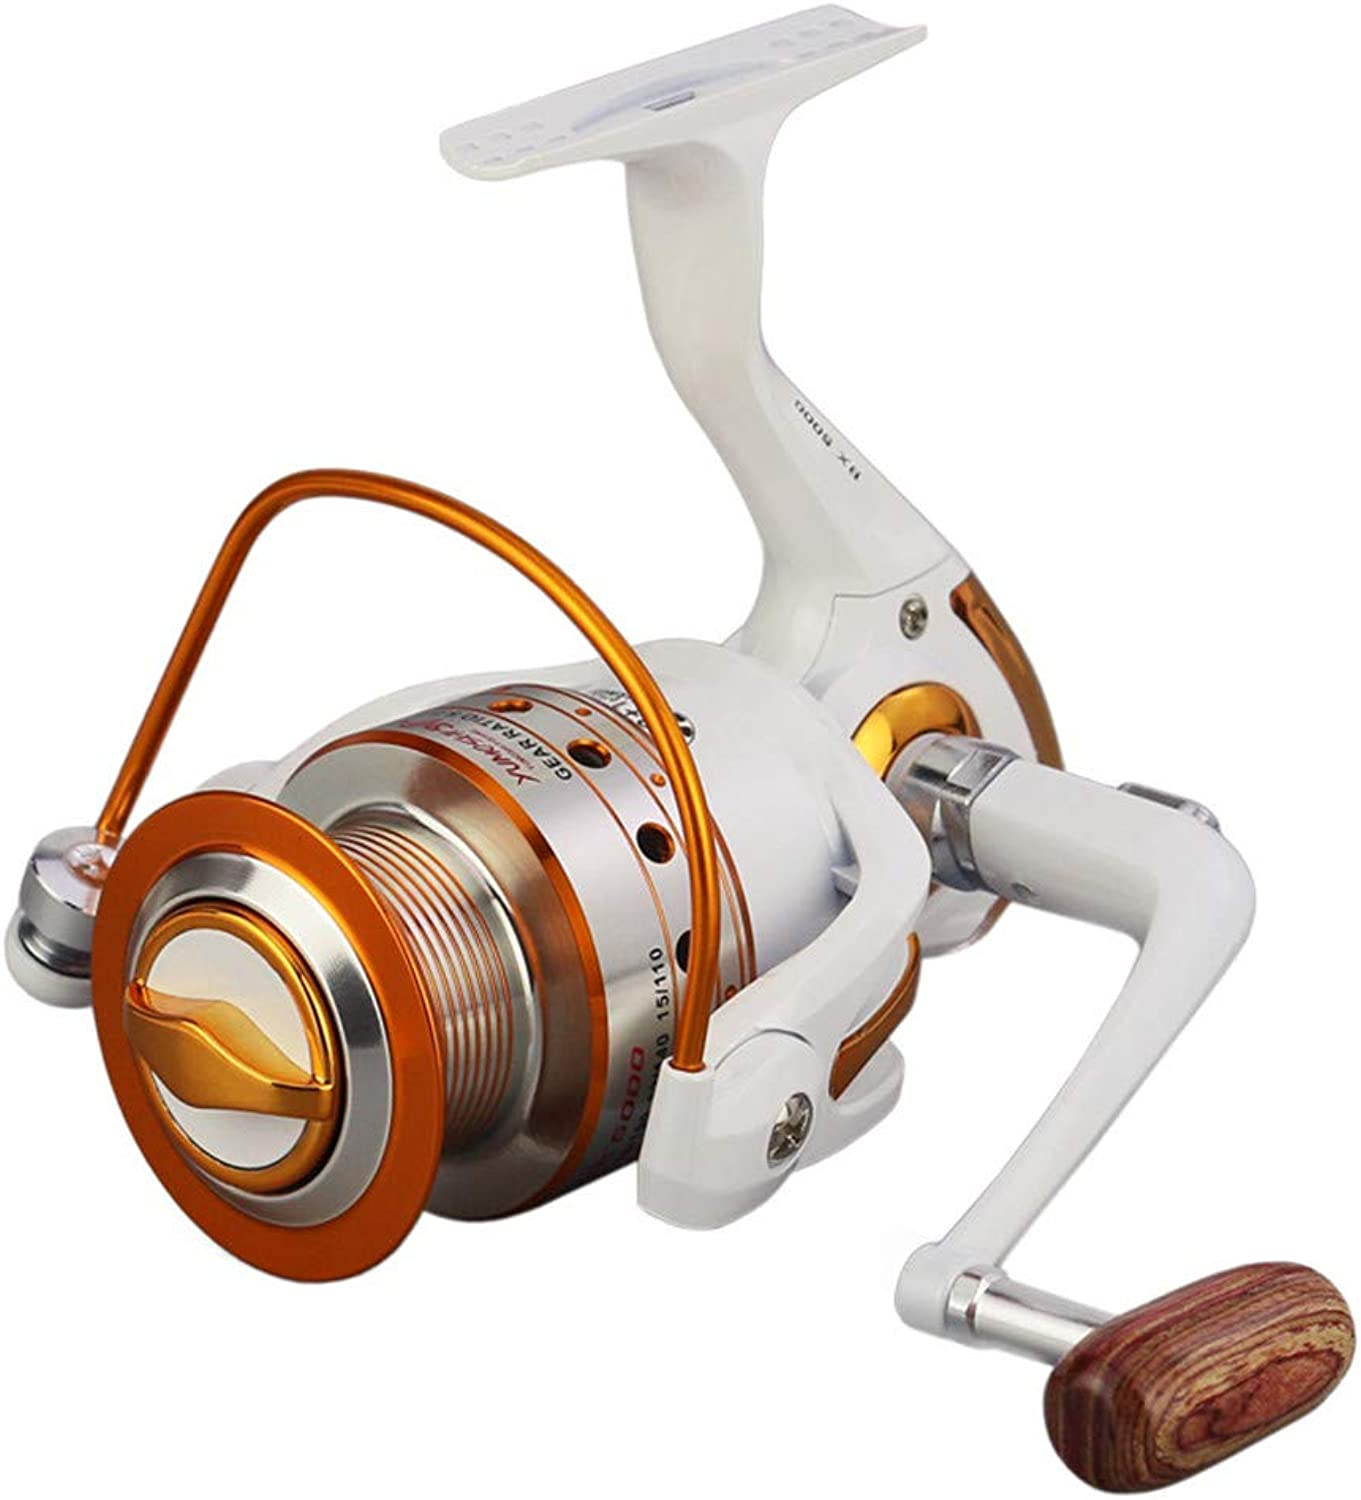 XBLAA redating Fishing Reel 12 + 1 Bearing Left Right Interchangeable Handle, Double Drag Braking System Fishing Reel Accessories